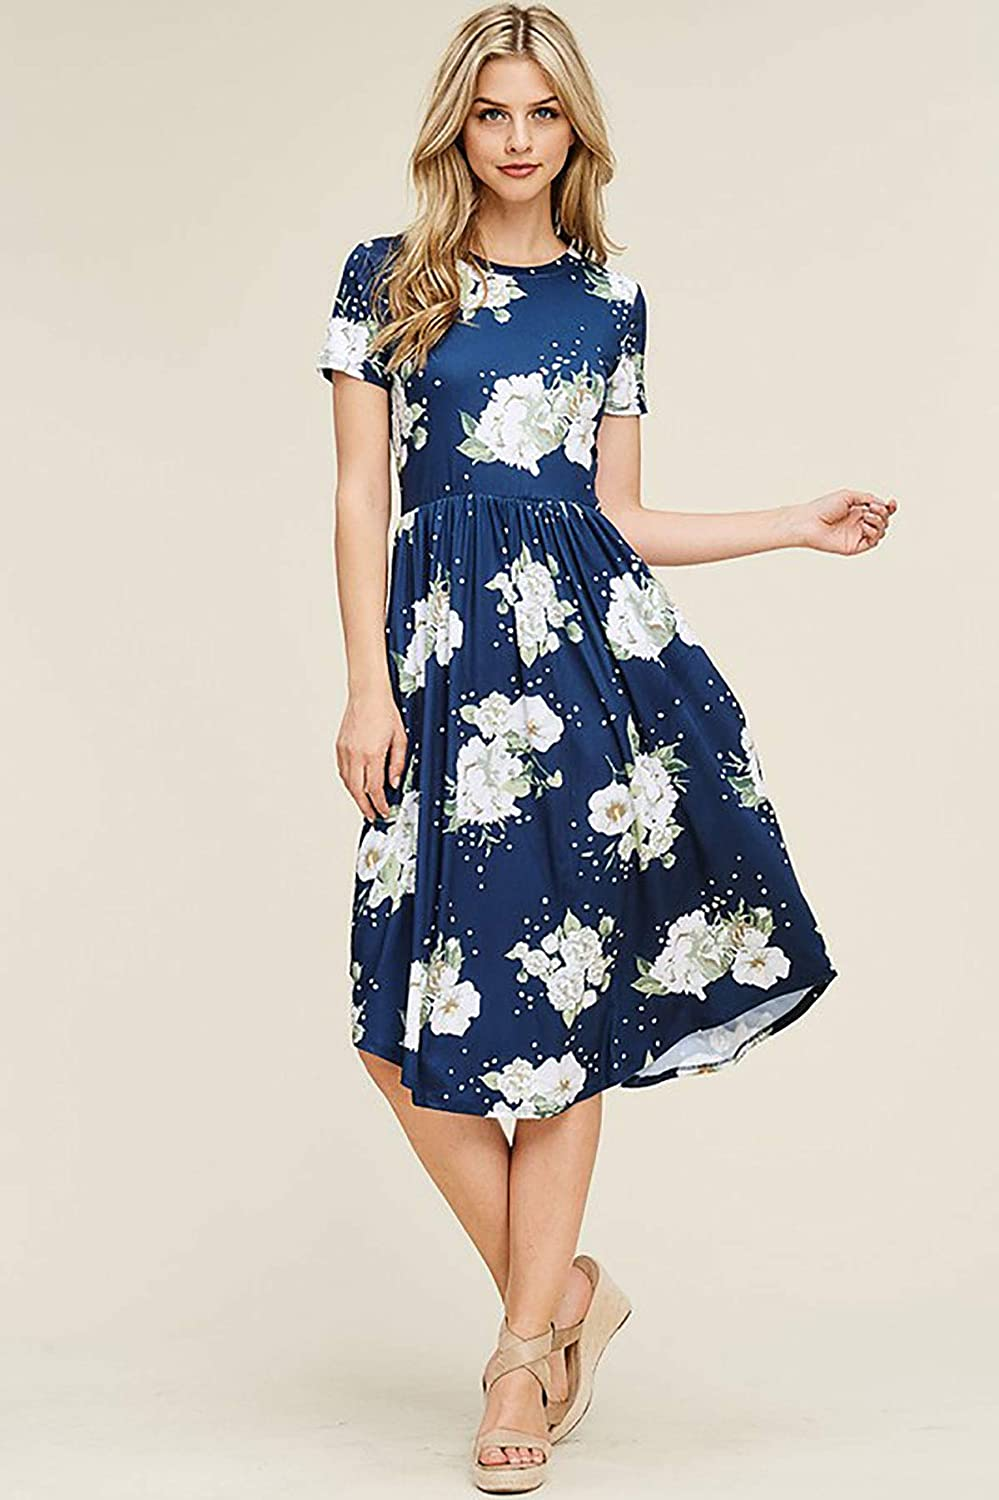 SHOPGLAMLA Floral Print Round Neck Hem Flared Short Sleeves Pocket Mid Dress Made in USA